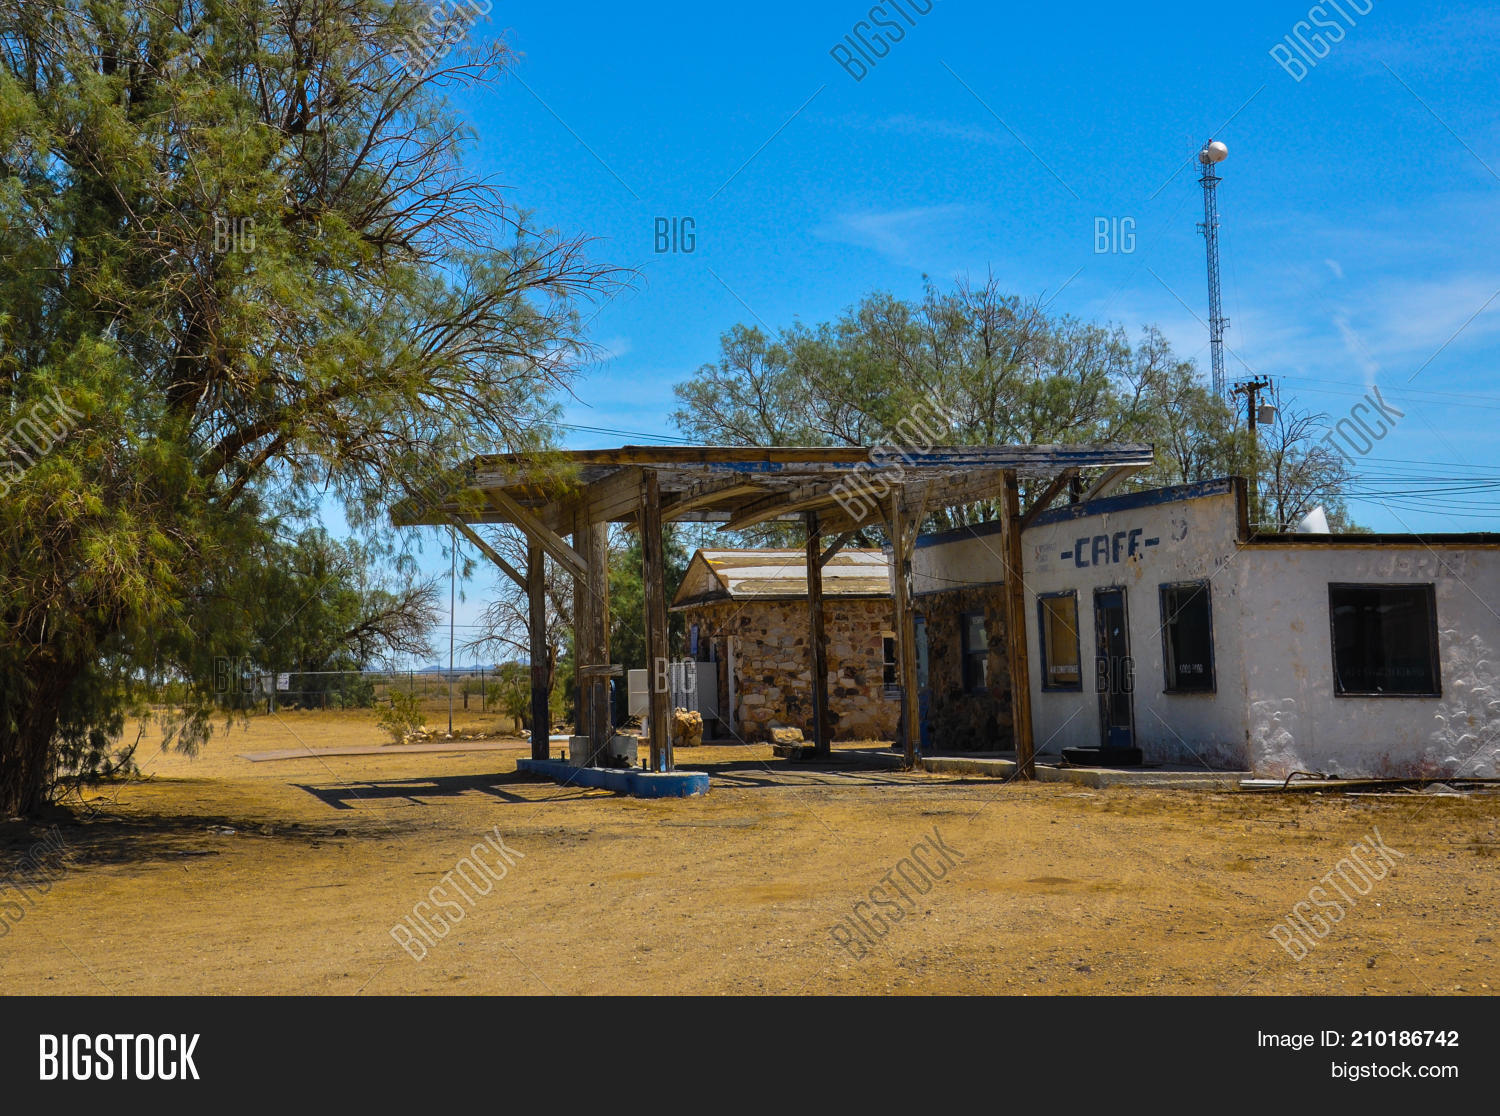 Abandoned Gas Station Image Photo Free Trial Bigstock